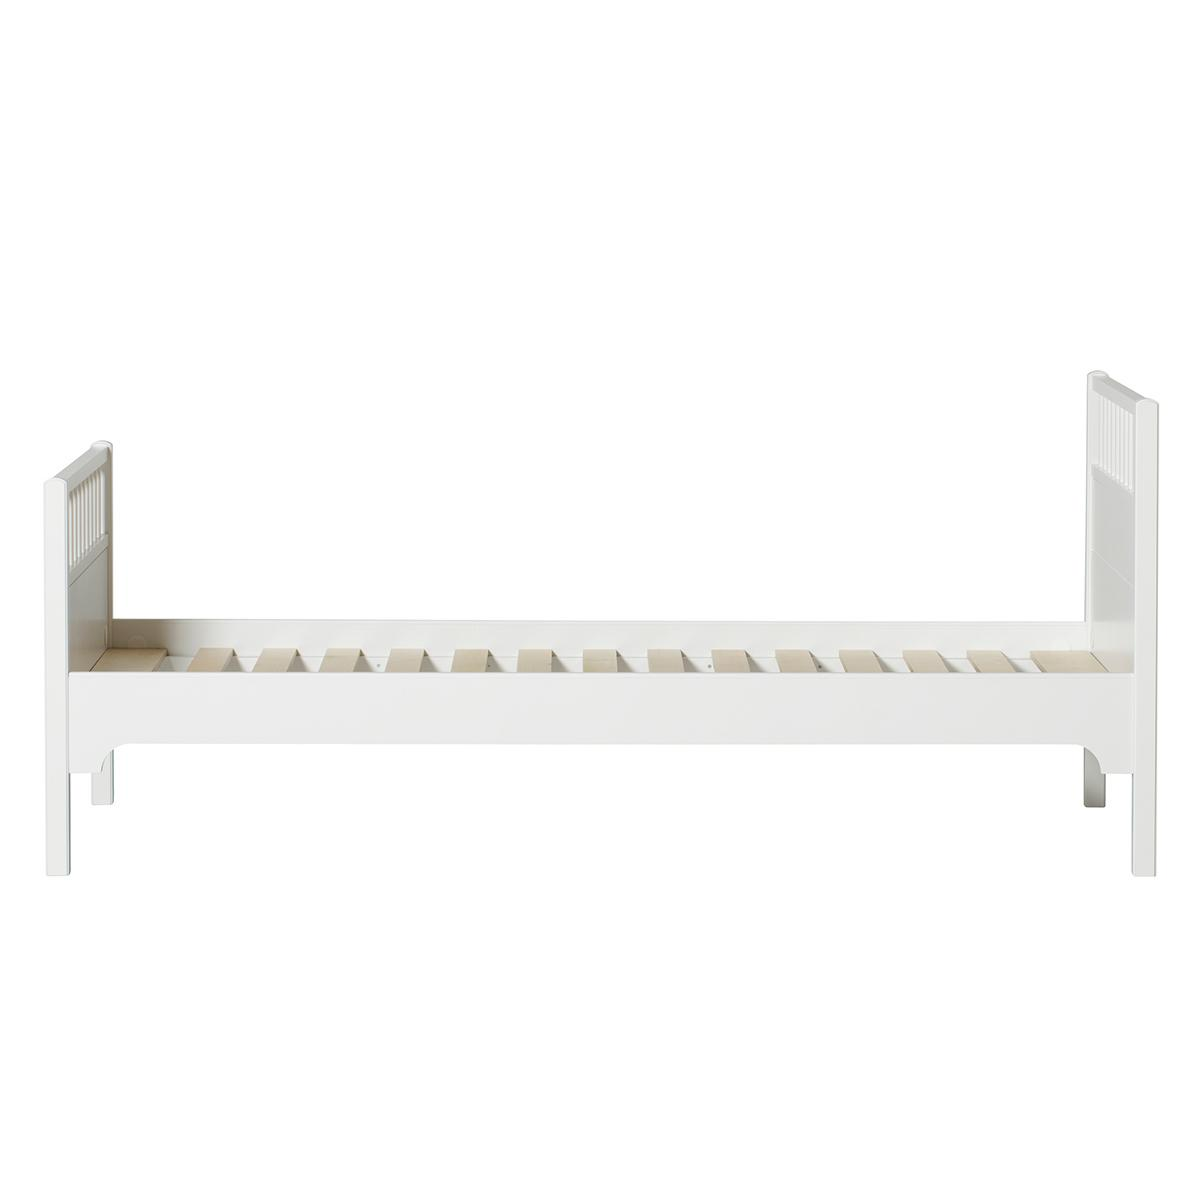 Lit 90x200 cm SEASIDE CLASSIC Oliver Furniture blanc